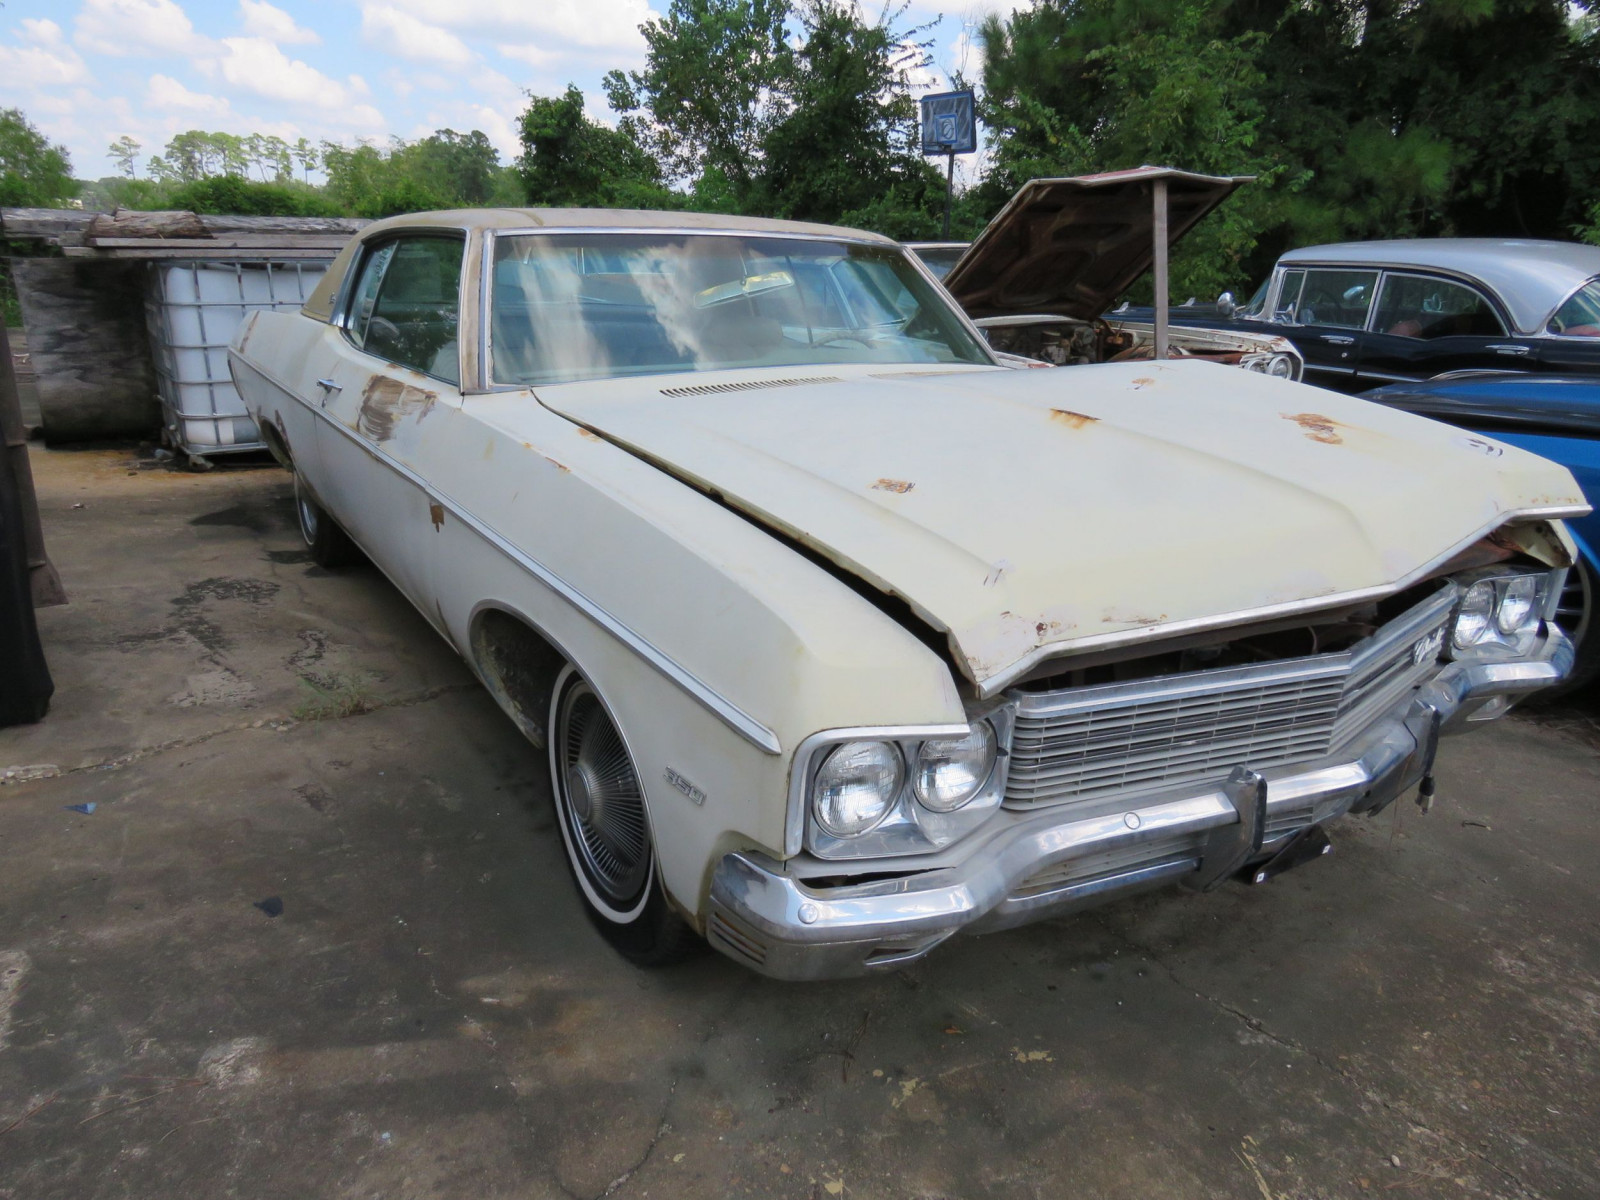 1970 Chevrolet Caprice 2dr HT - Image 2